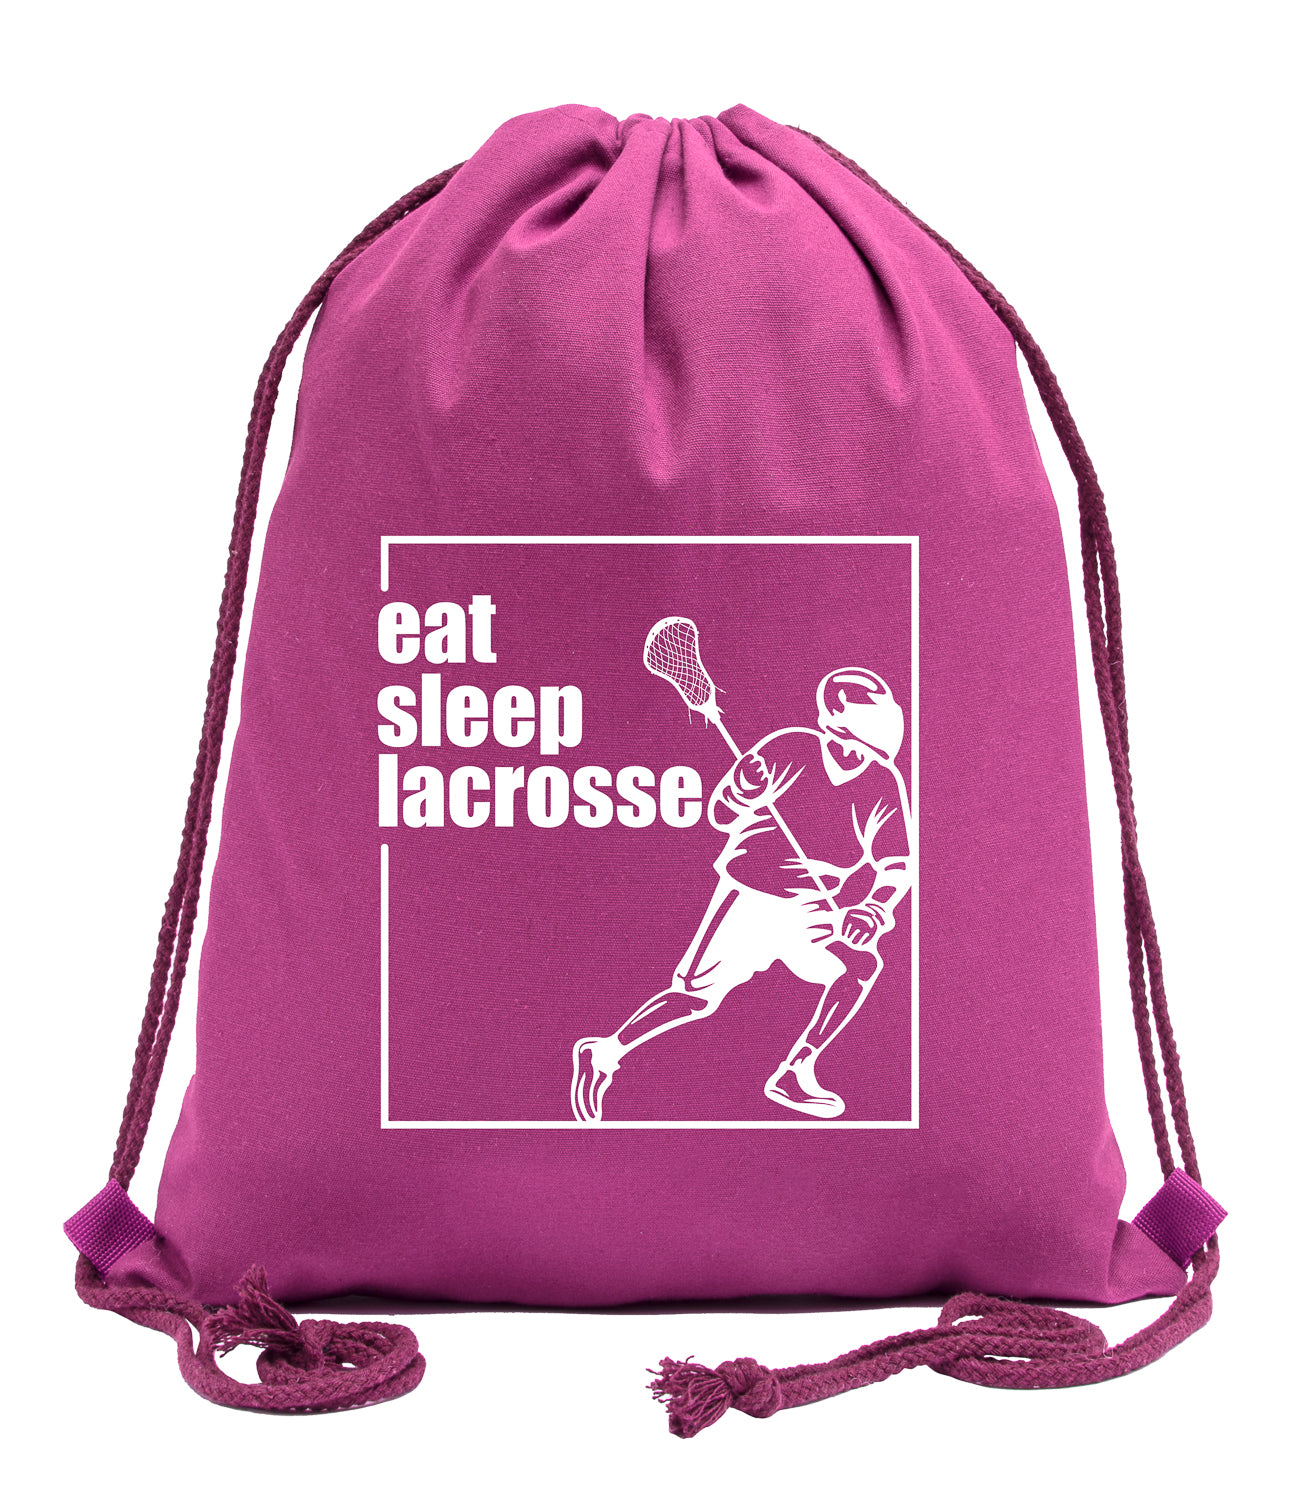 Eat Sleep Lacrosse Male Cotton Drawstring Backpack